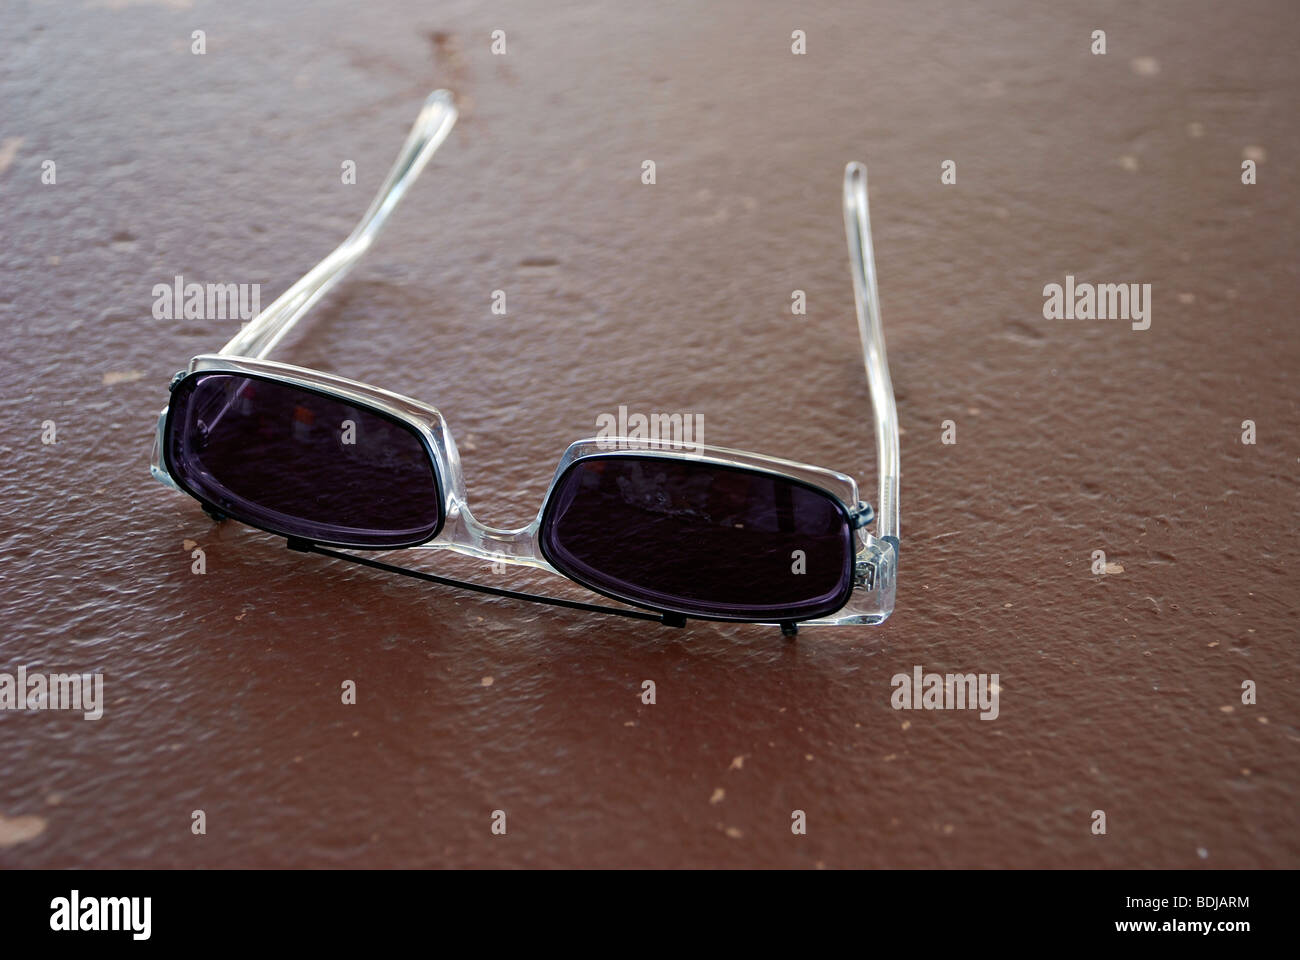 Glasses with sun shade clip-ons on table - Stock Image